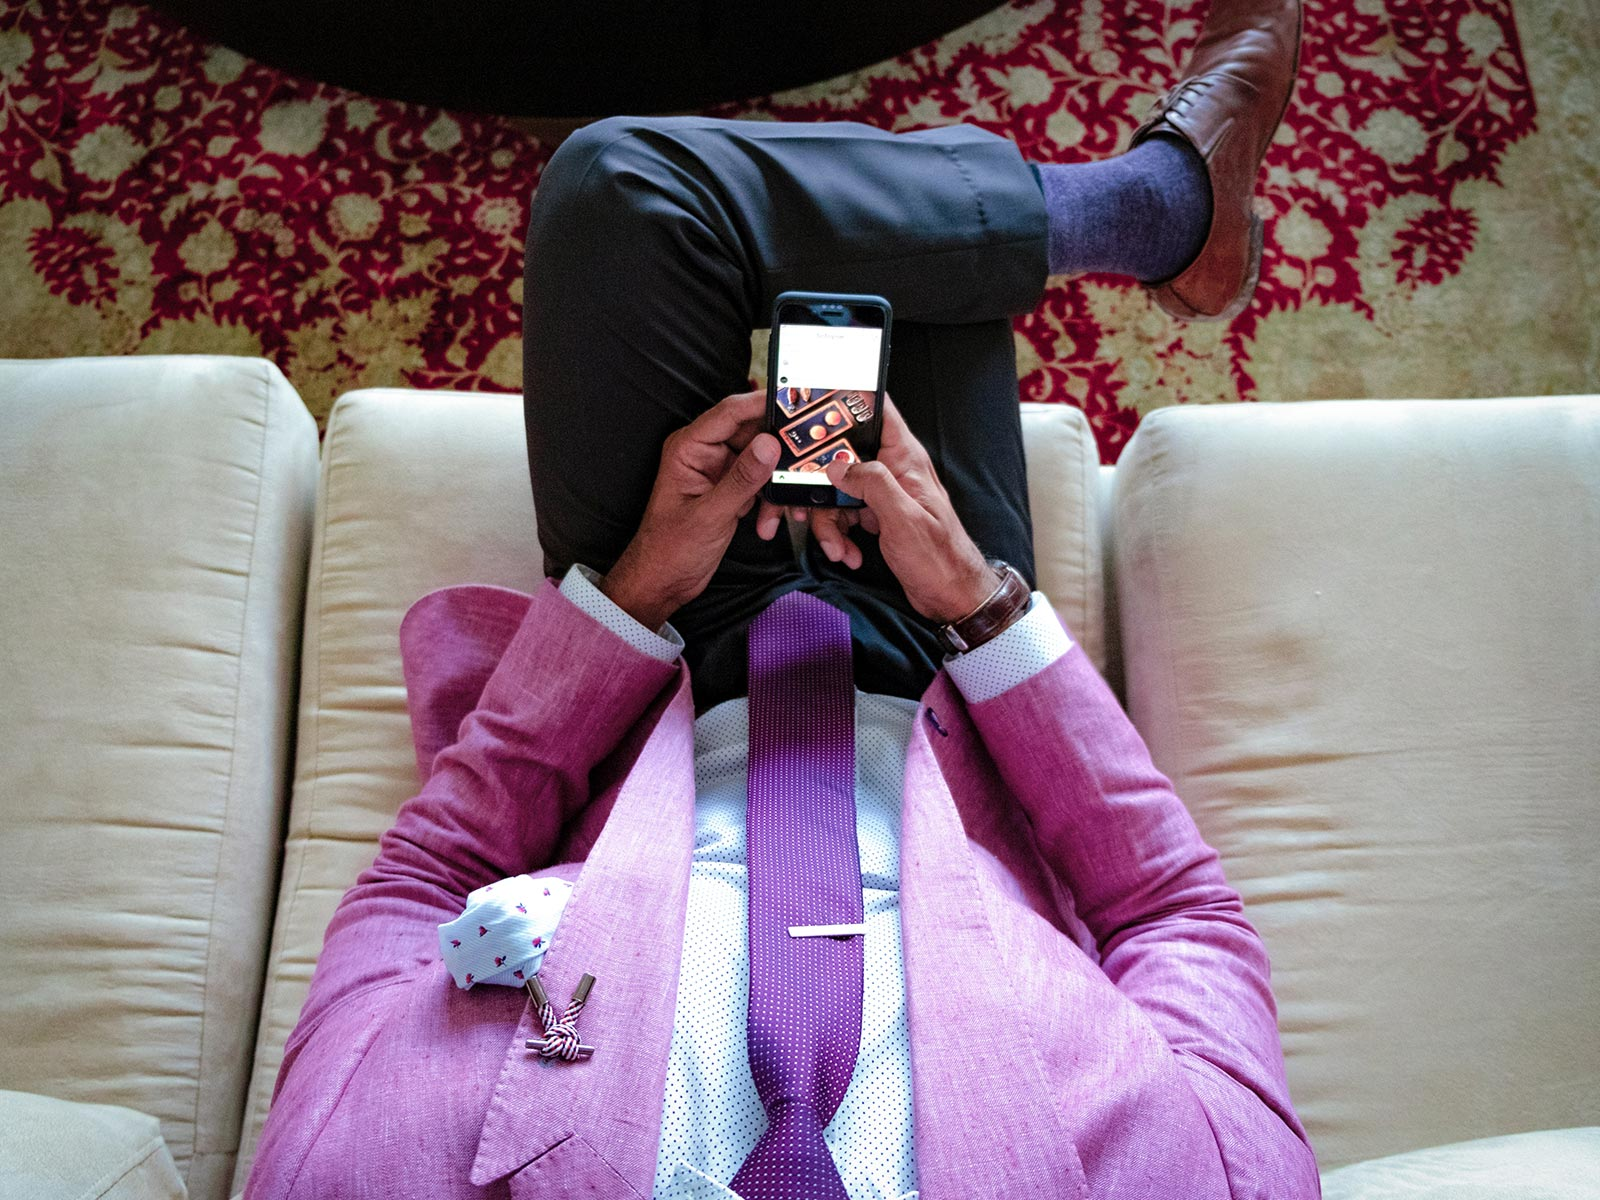 Overhead of man in pink suit on couch looking at phone